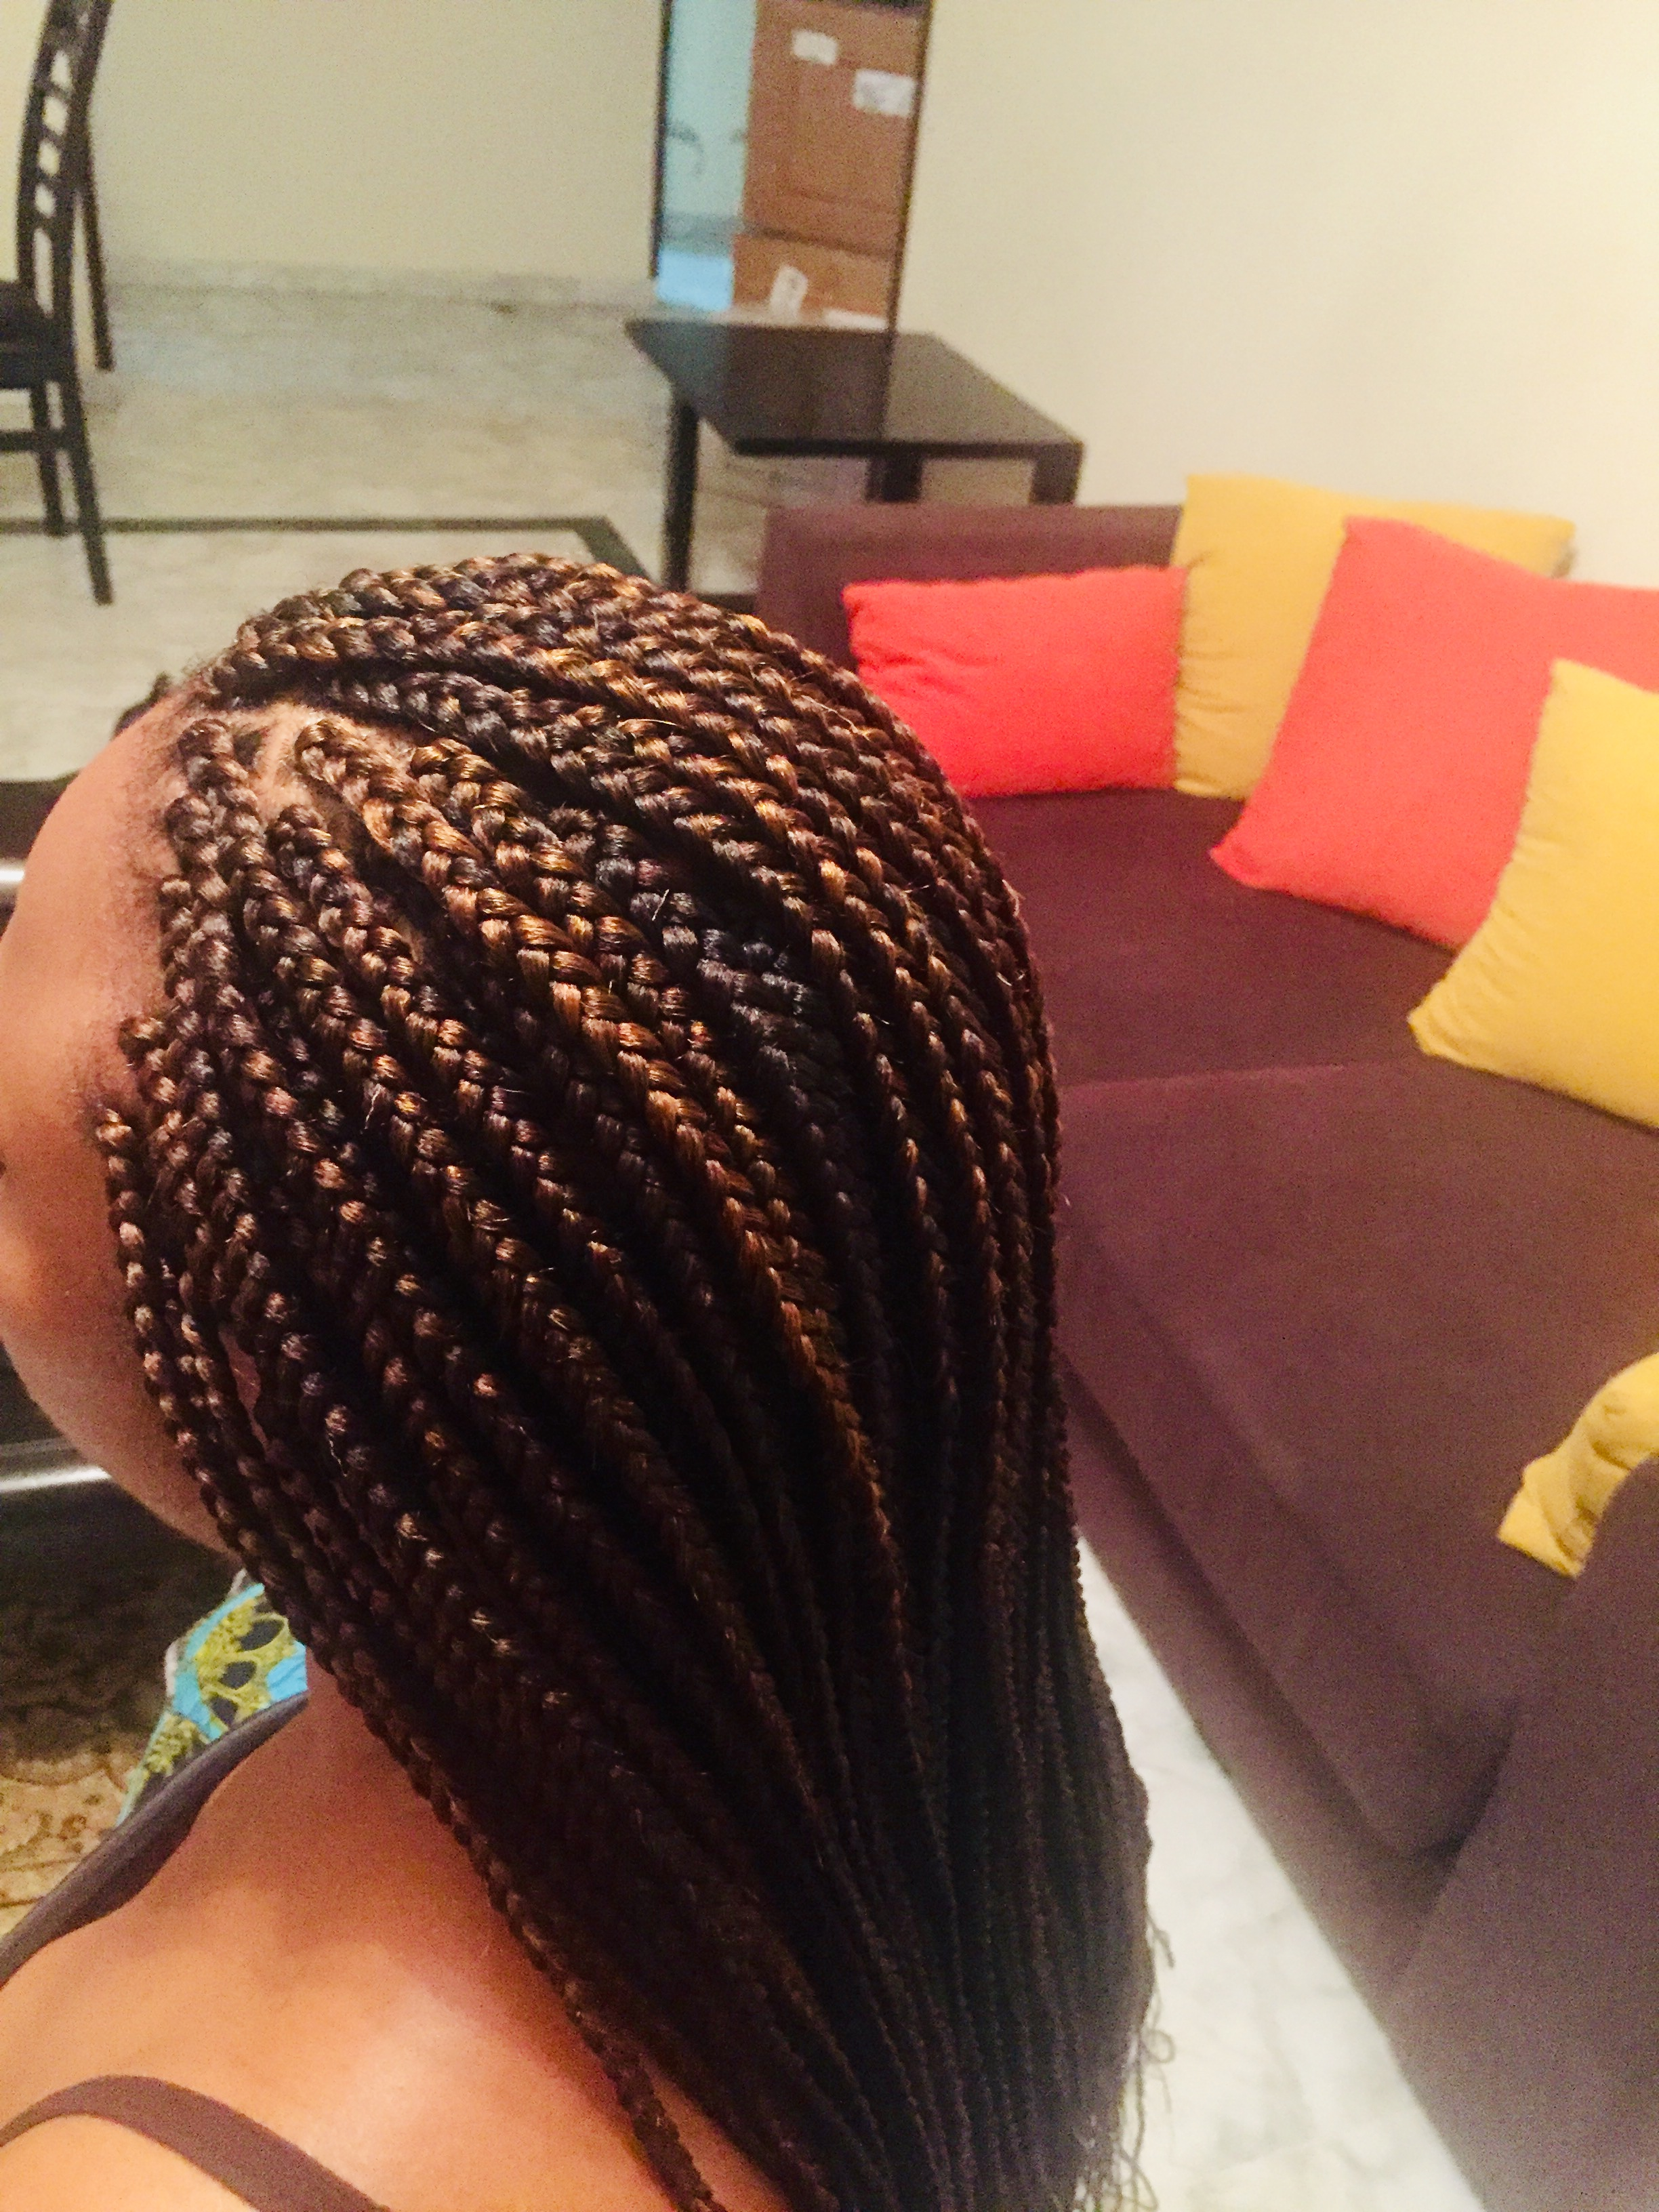 salon de coiffure afro tresse tresses box braids crochet braids vanilles tissages paris 75 77 78 91 92 93 94 95 GXSODRCJ